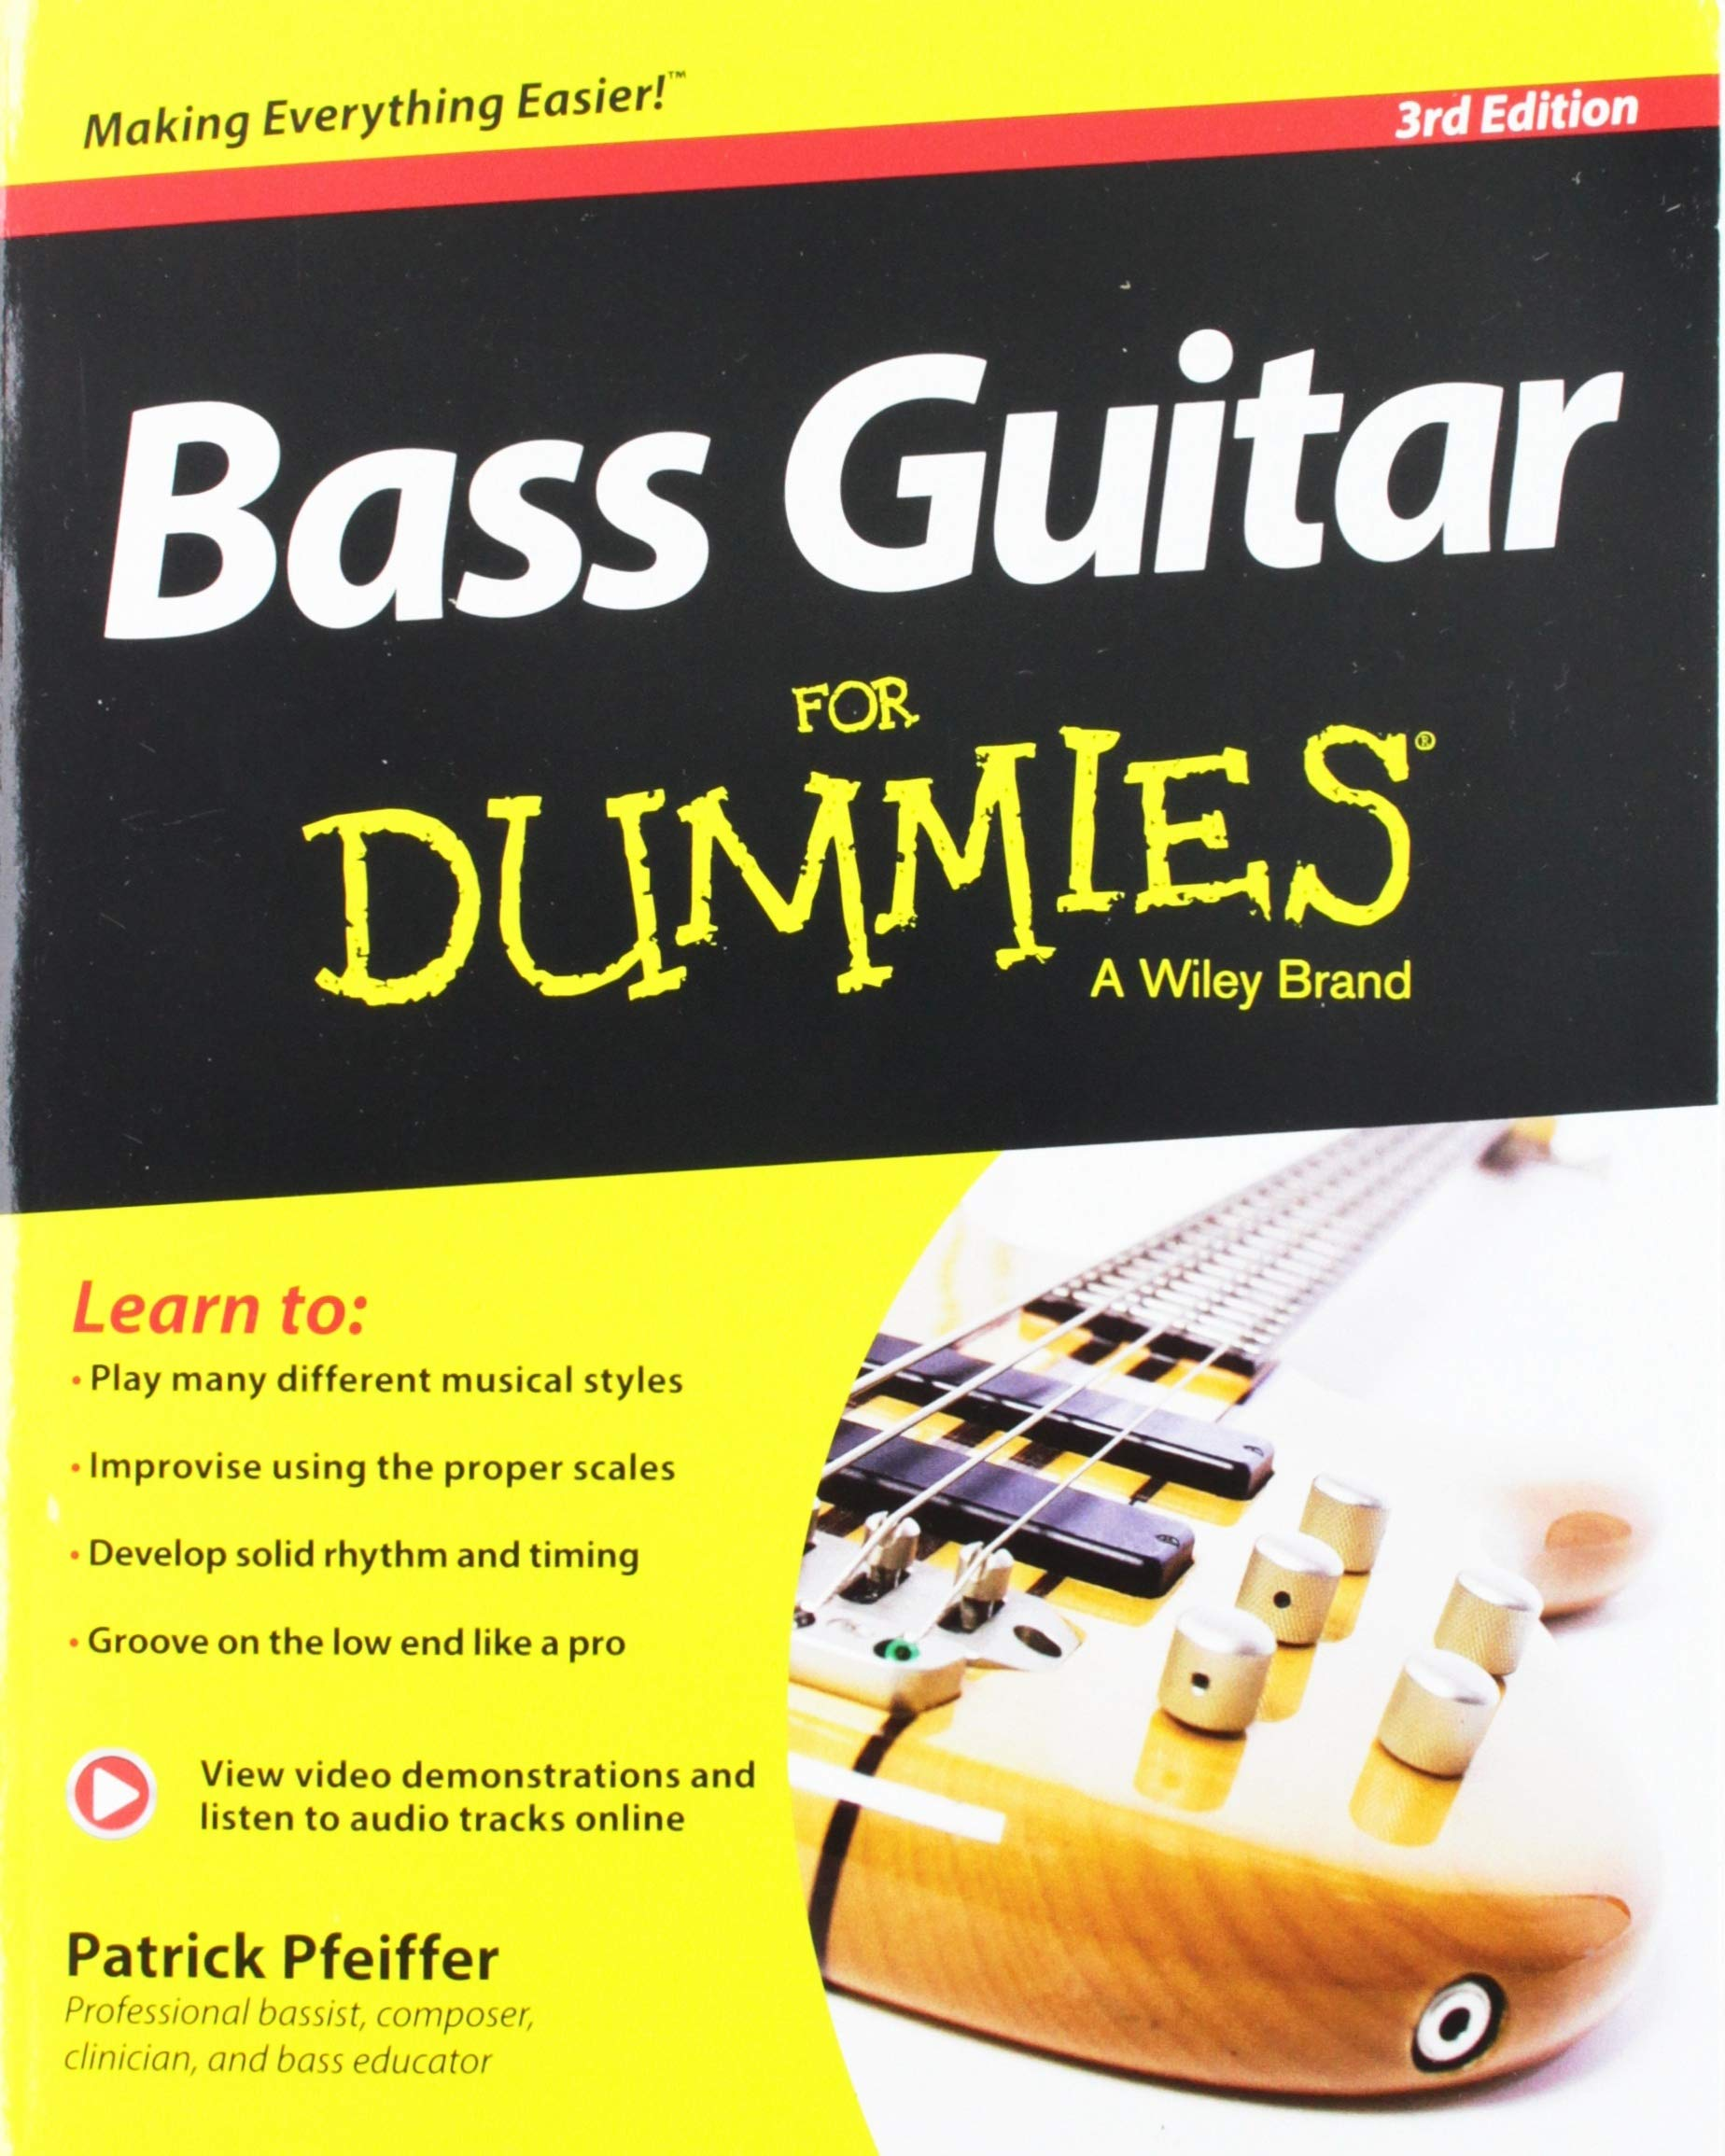 Bass Guitar For Dummies: Book + Online Video & Audio Instruction: Amazon.es: Patrick Pfeiffer: Libros en idiomas extranjeros